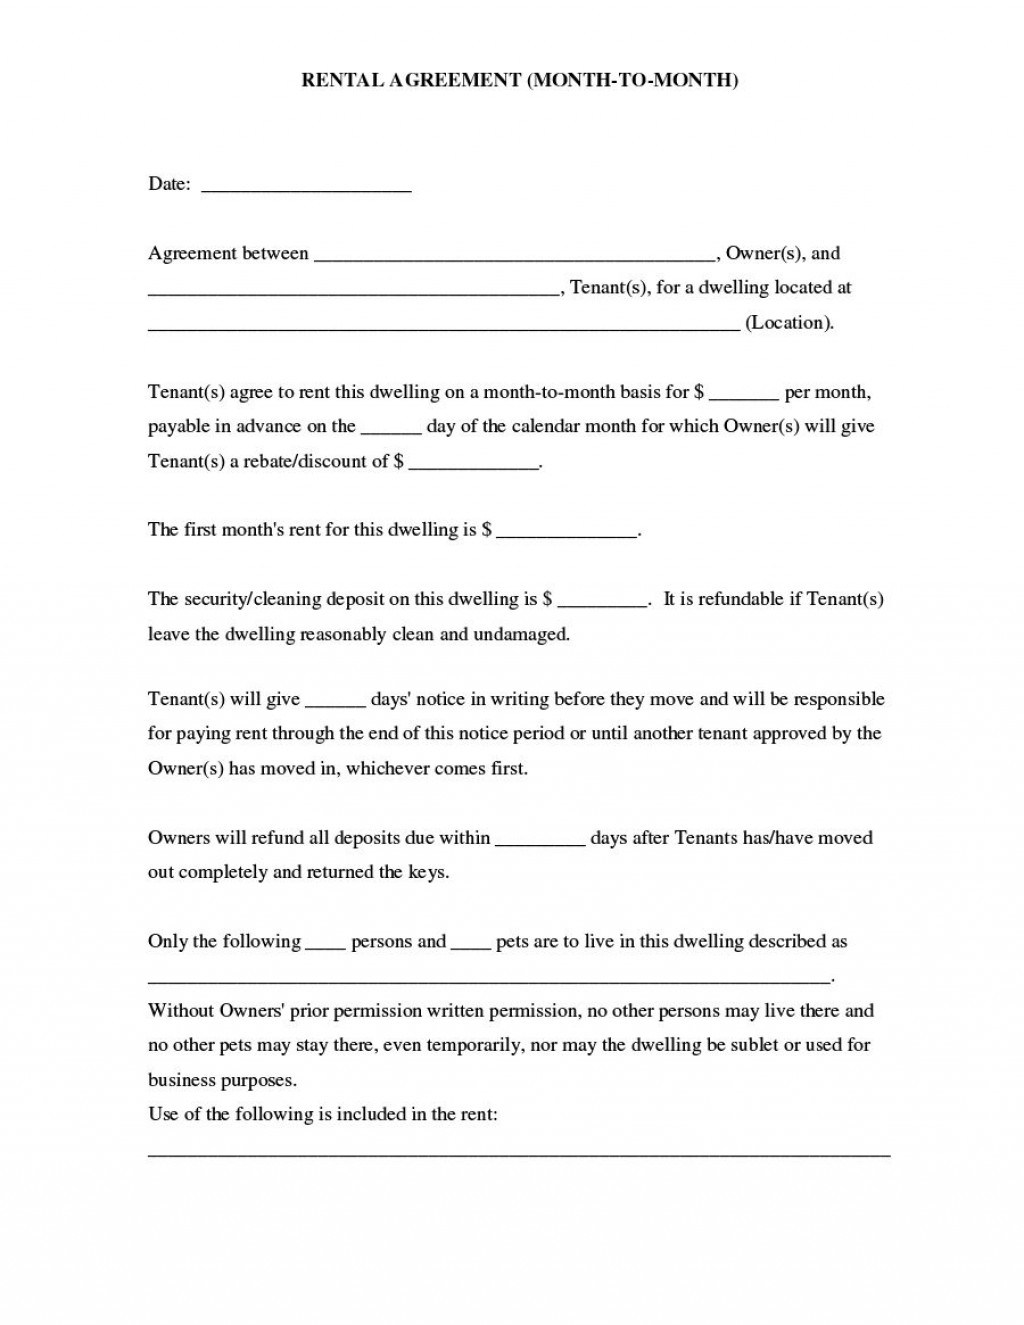 008 Top Simple Lease Agreement Template Sample  Tenancy Free Download Rent Format In Word India RentalLarge